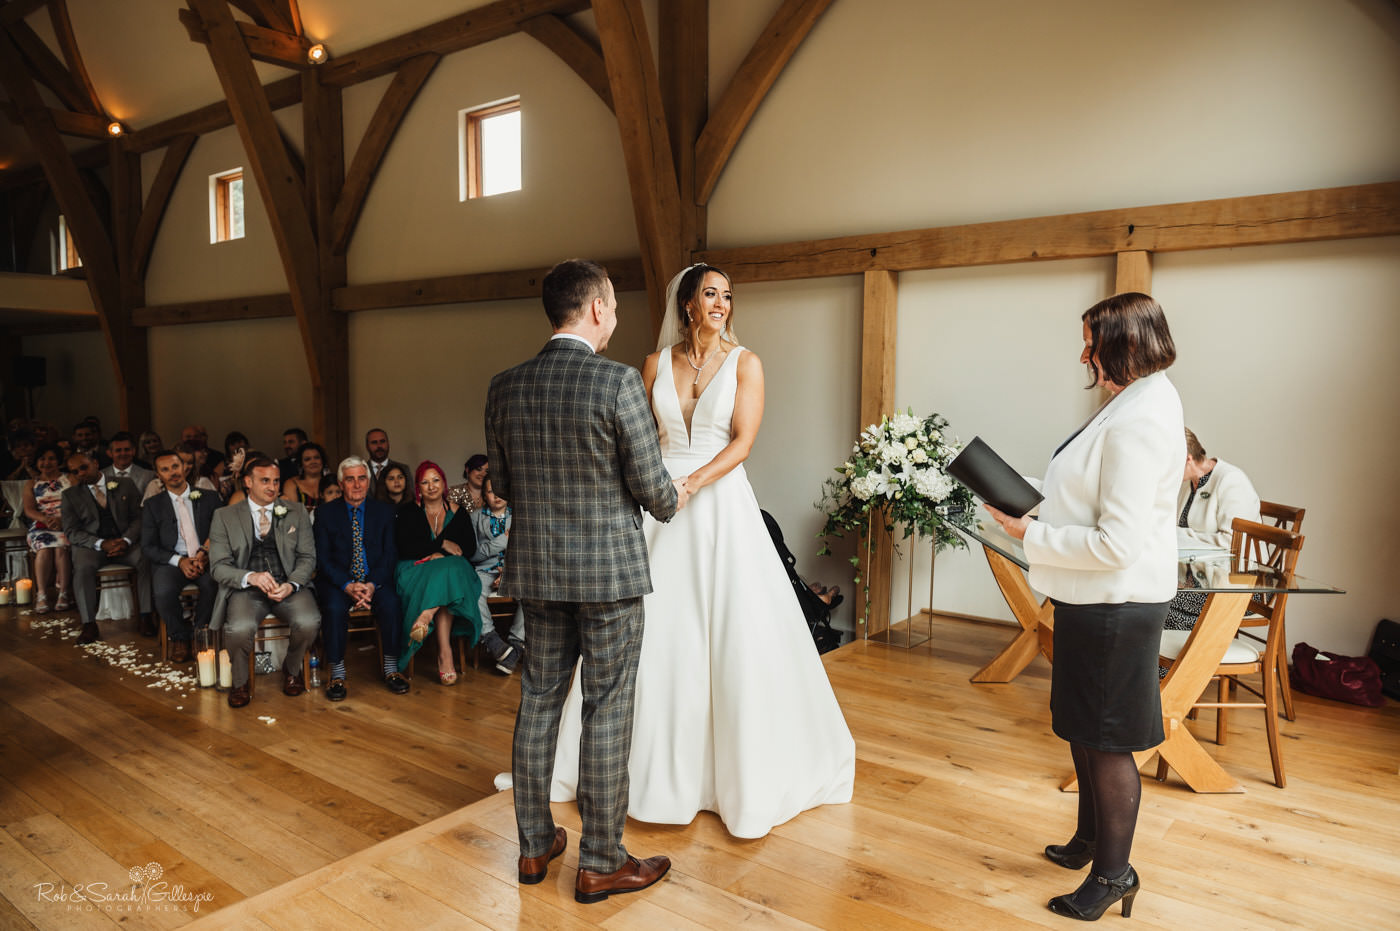 Wedding ceremony at The Mill Barns in Shropshire